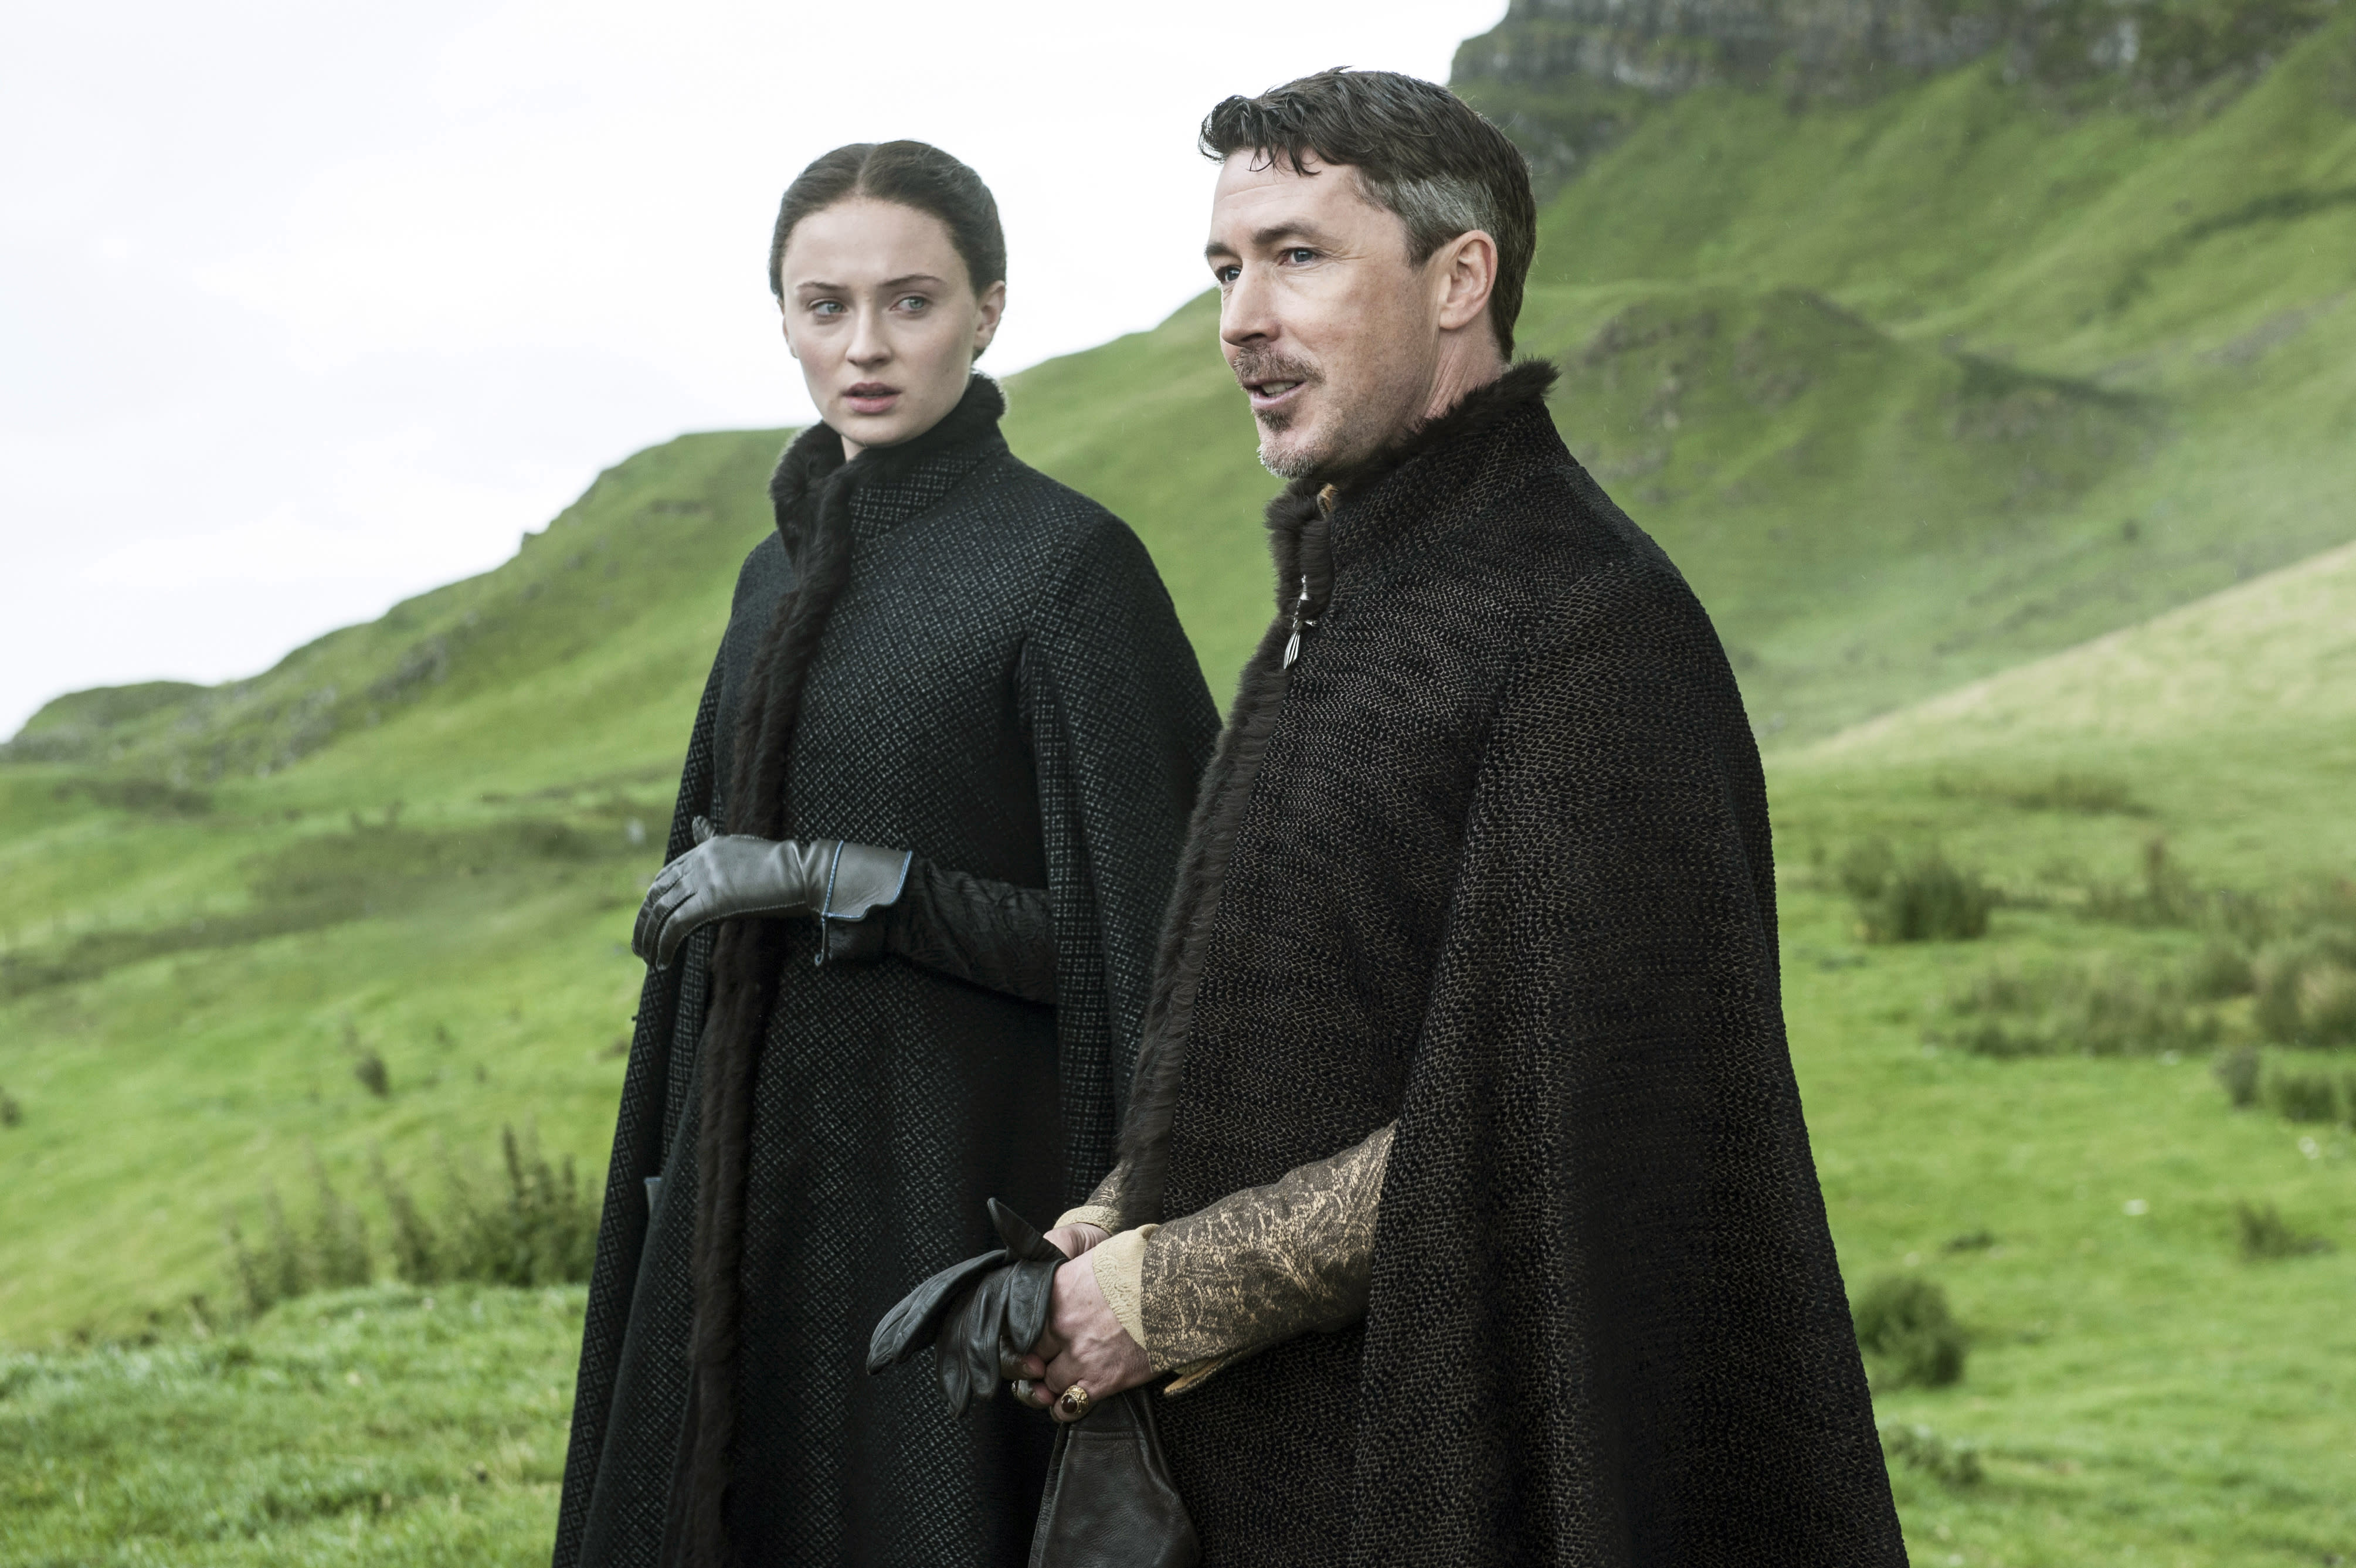 HBO Now will be available through Android too this summer